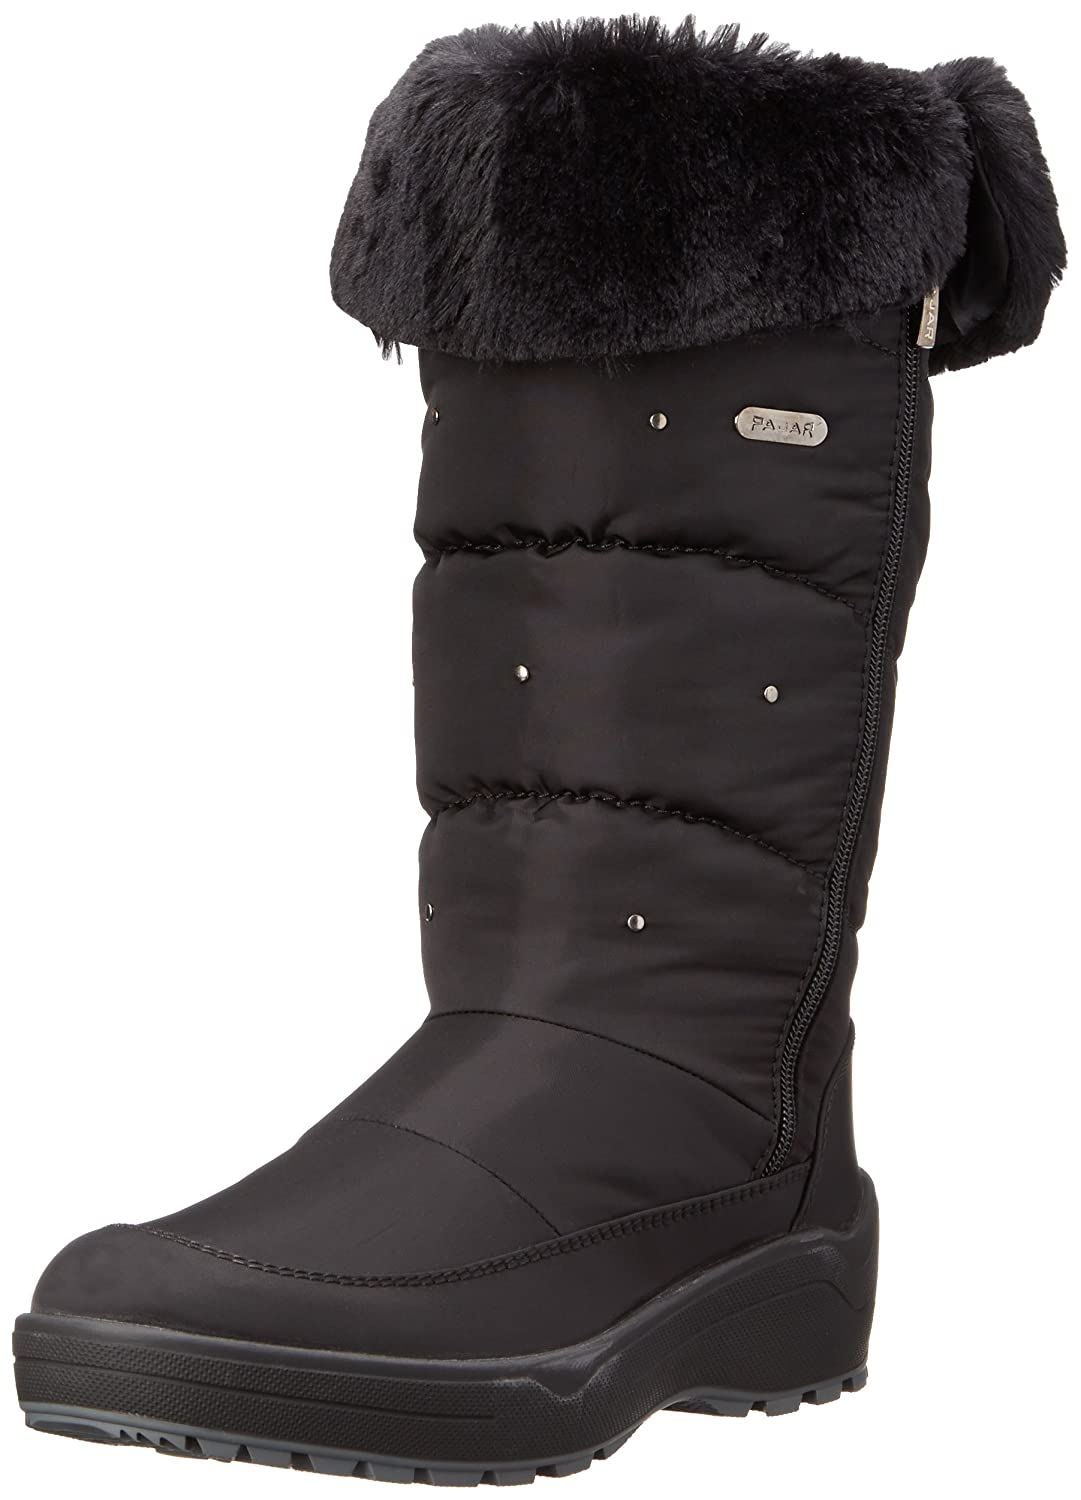 Pajar Women's Varsovie 3 Boot B00J4C2TNG 40 EU/9-9.5 M US|Black